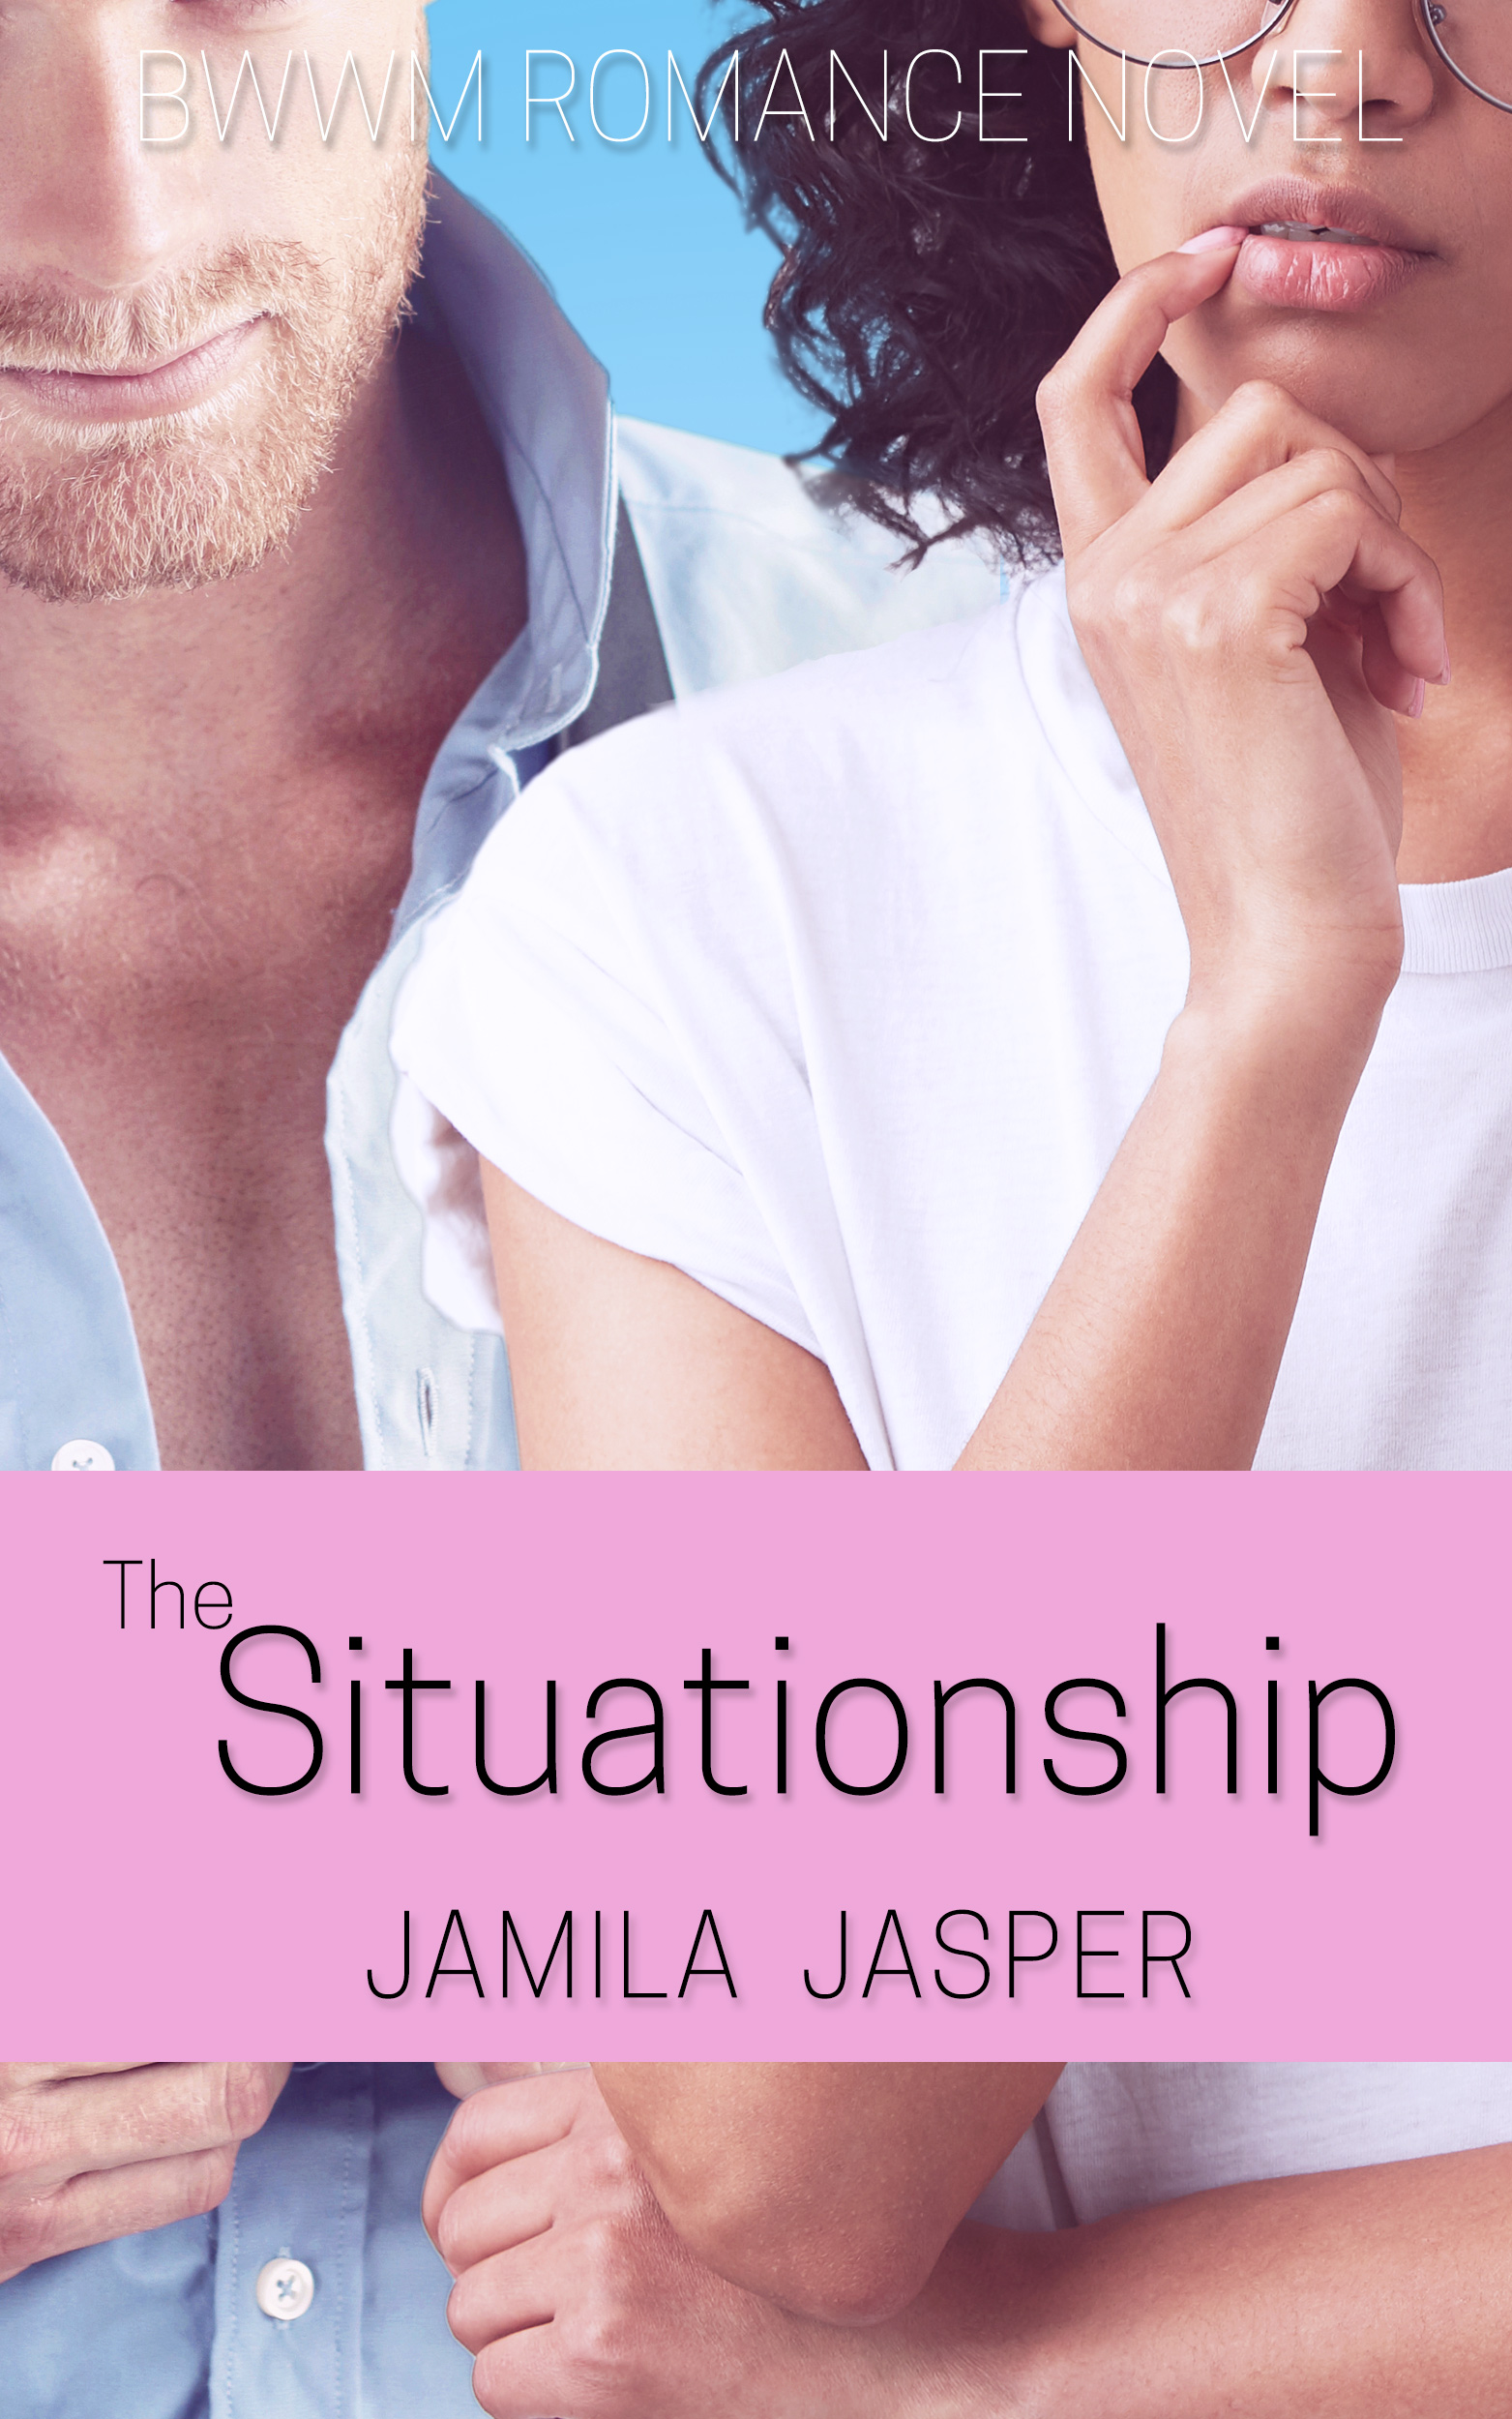 the situationship romance novel excerpts bwwm